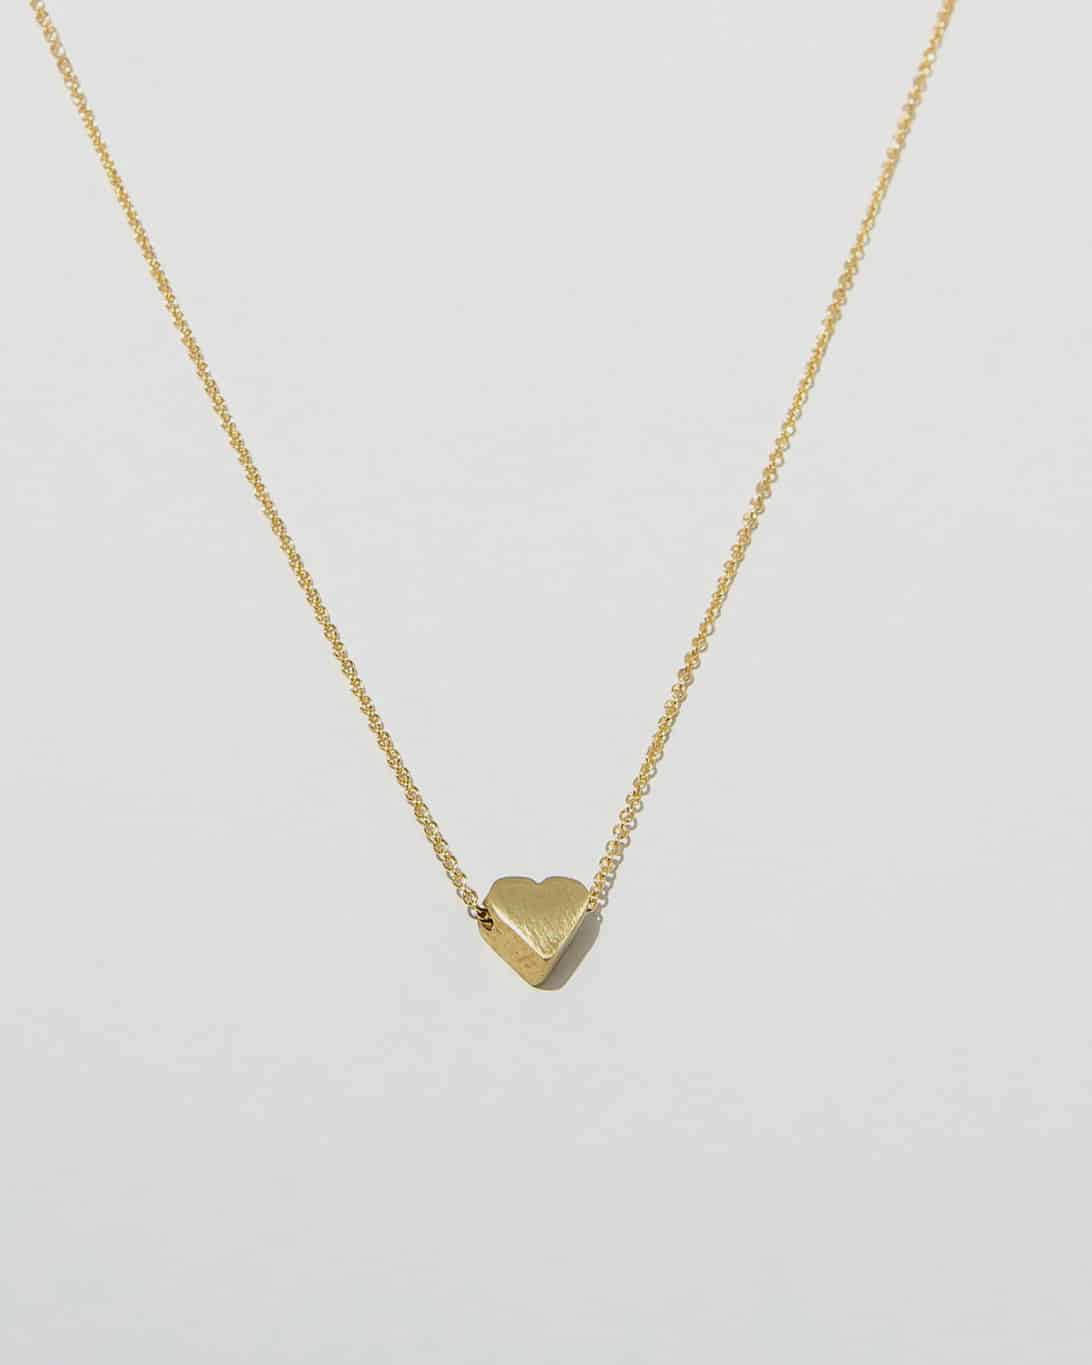 brass chain necklace with a heart on the end